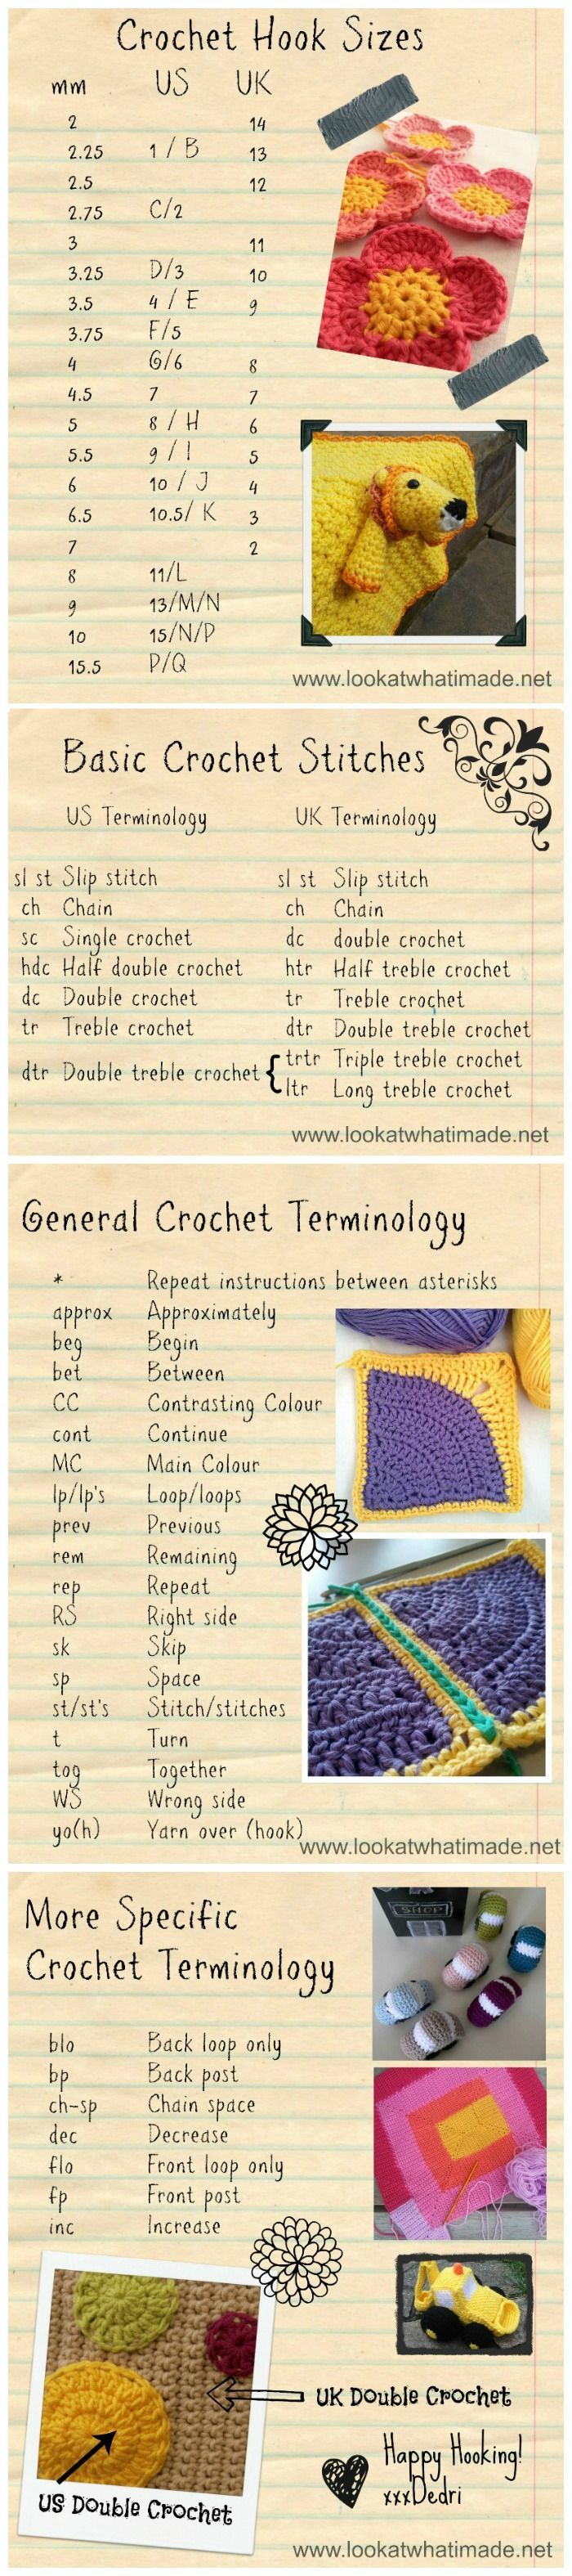 The most useful chart any crocheter can have! Crochet Hook Sizes (US, UK and metric) and Crochet Terminology (US and UK). I use the crochet hook chart ALL the time when designing. Printer-friendly version available (both as an image and as a PDF). #crochethook #crochet #crochetterminology